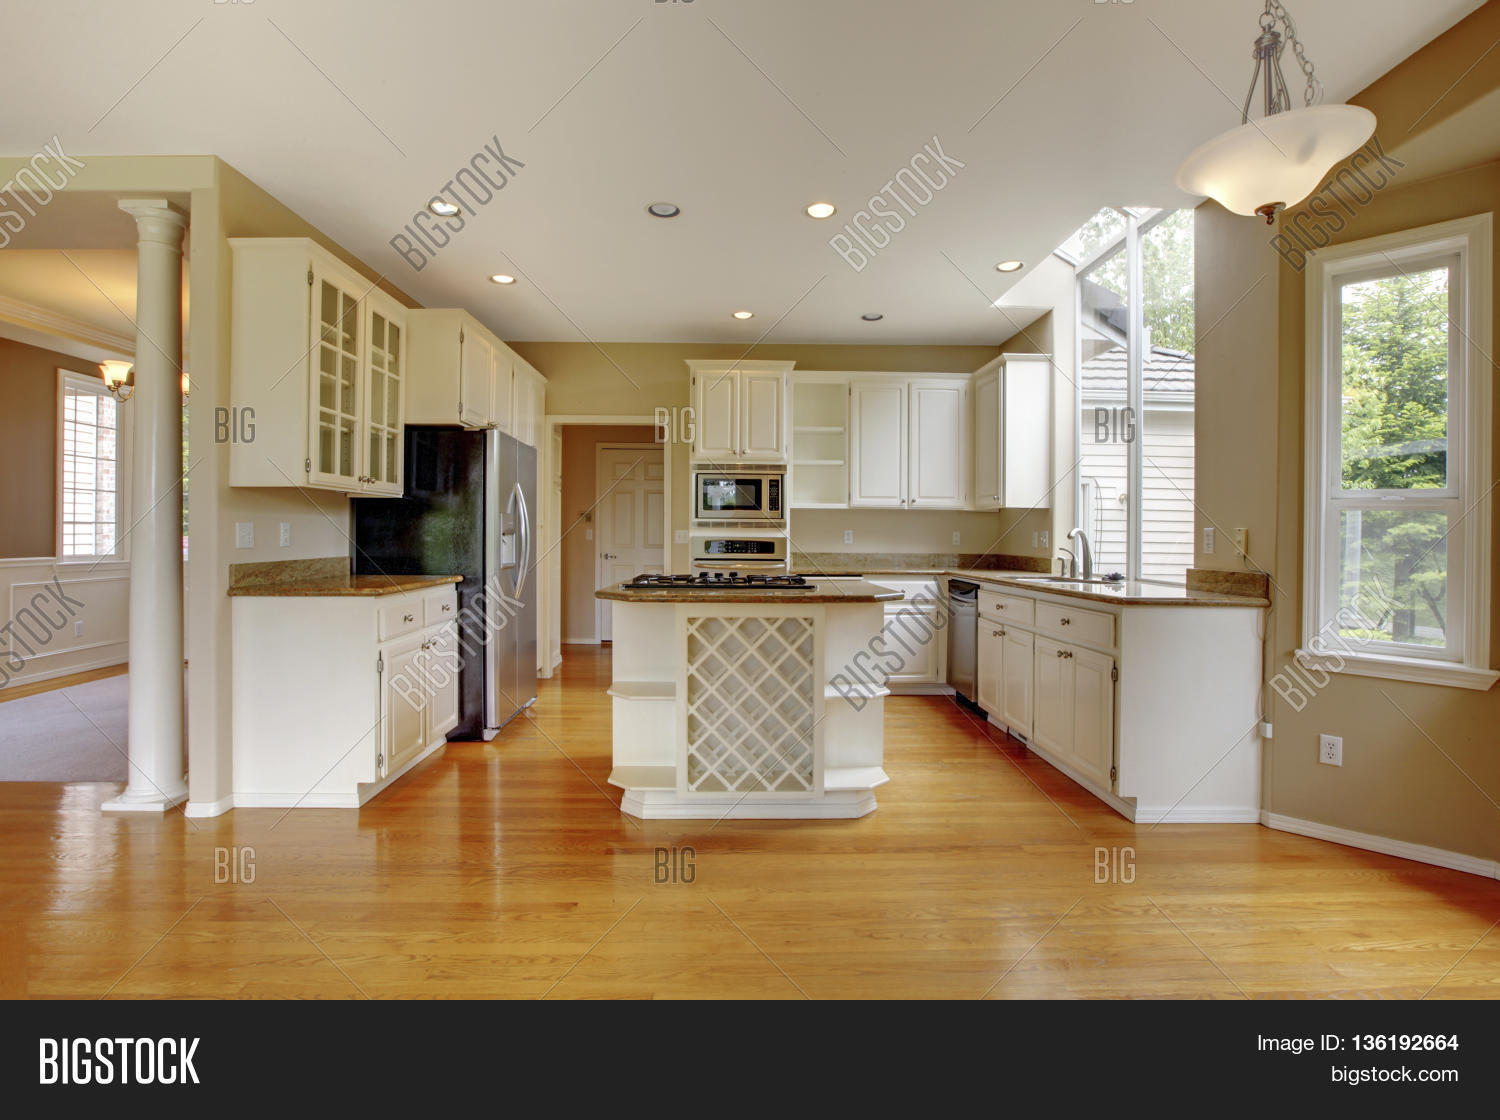 american classics kitchen cabinets price pfister treviso faucet small classic image and photo bigstock